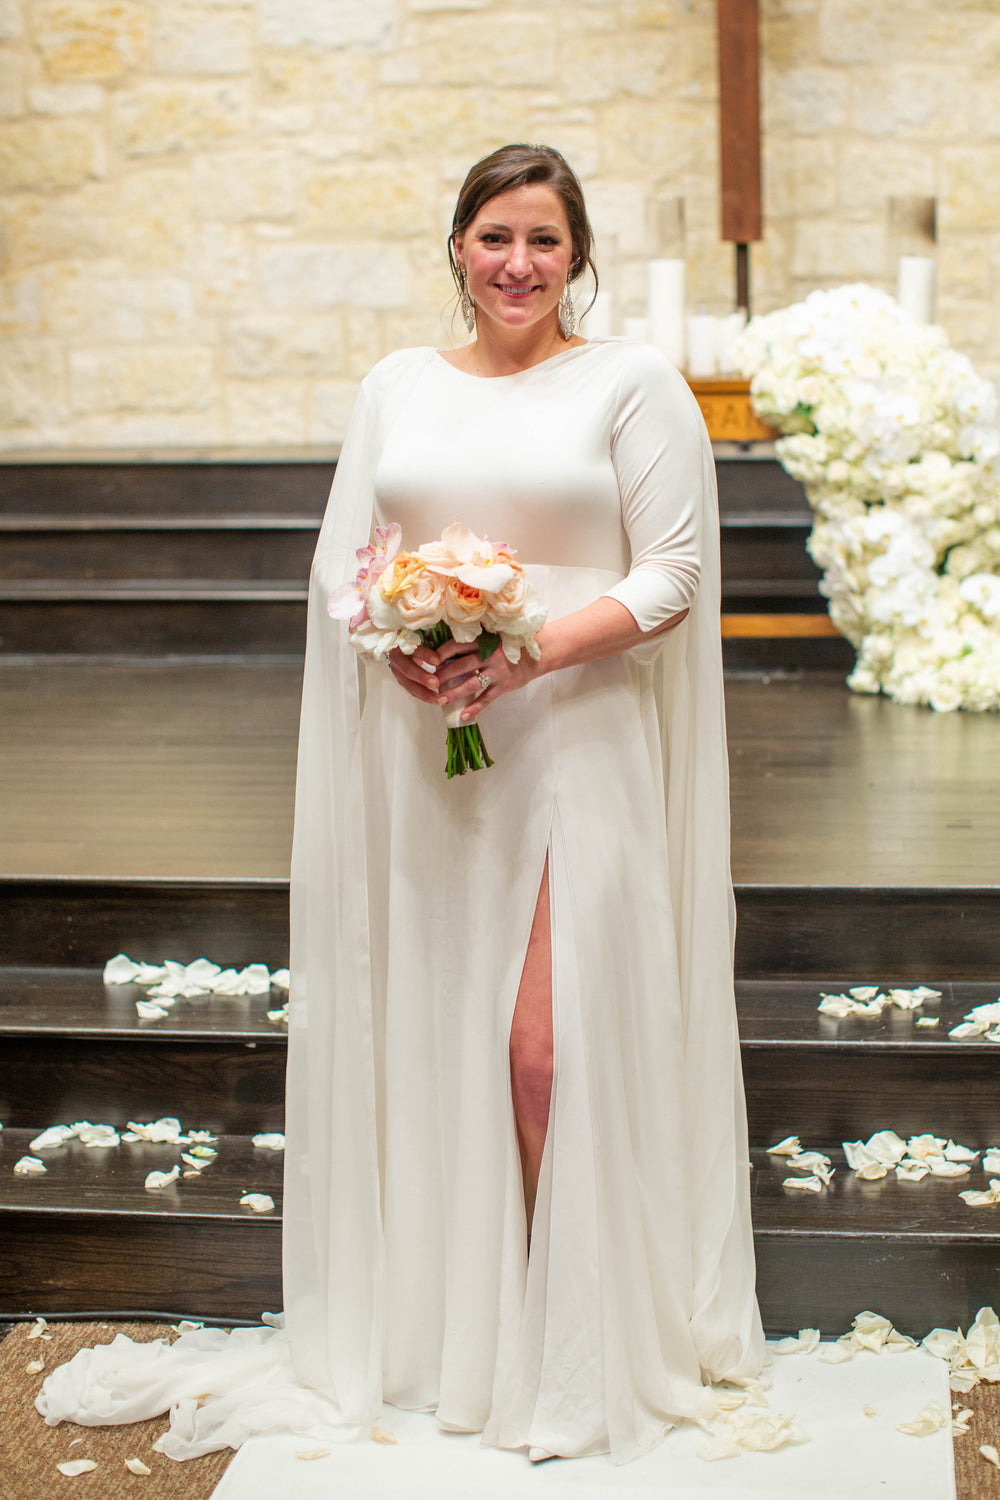 Natalie Pikin Custom Wedding Gown David Peck Houston Texas